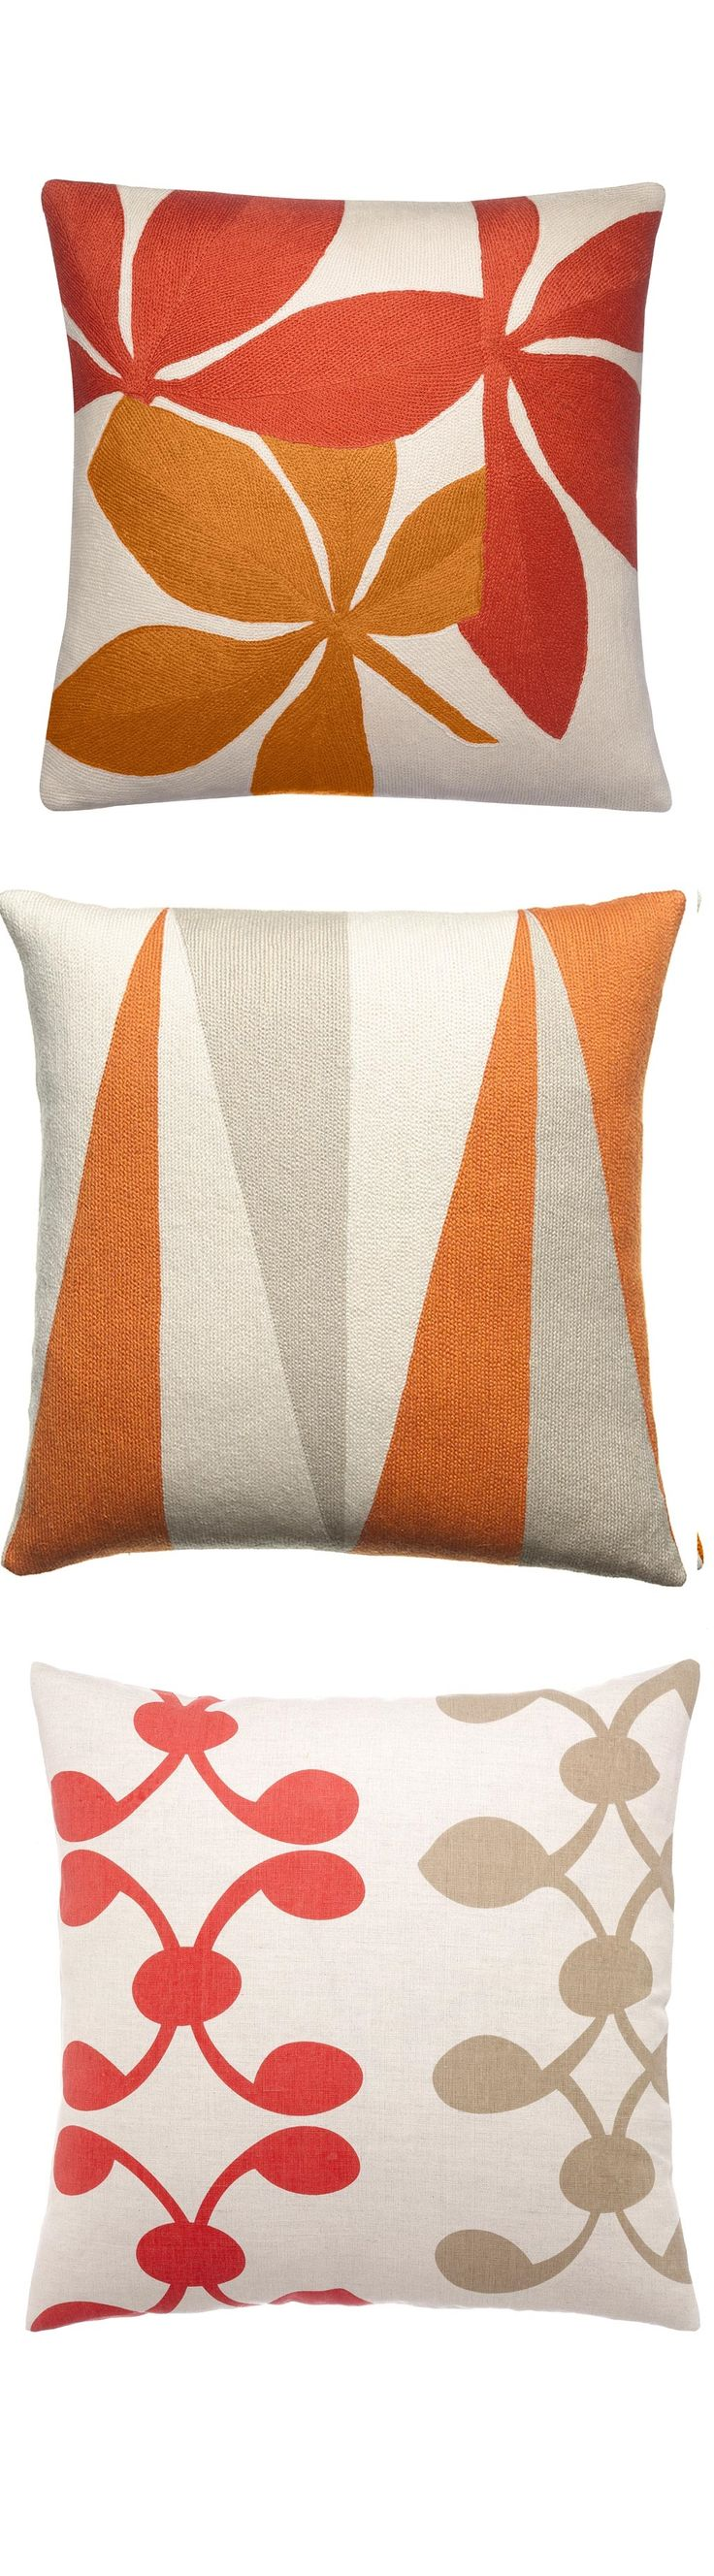 Orange Sofa Pillows Tangga Orange Throw Pillow 20x20 - TheSofa